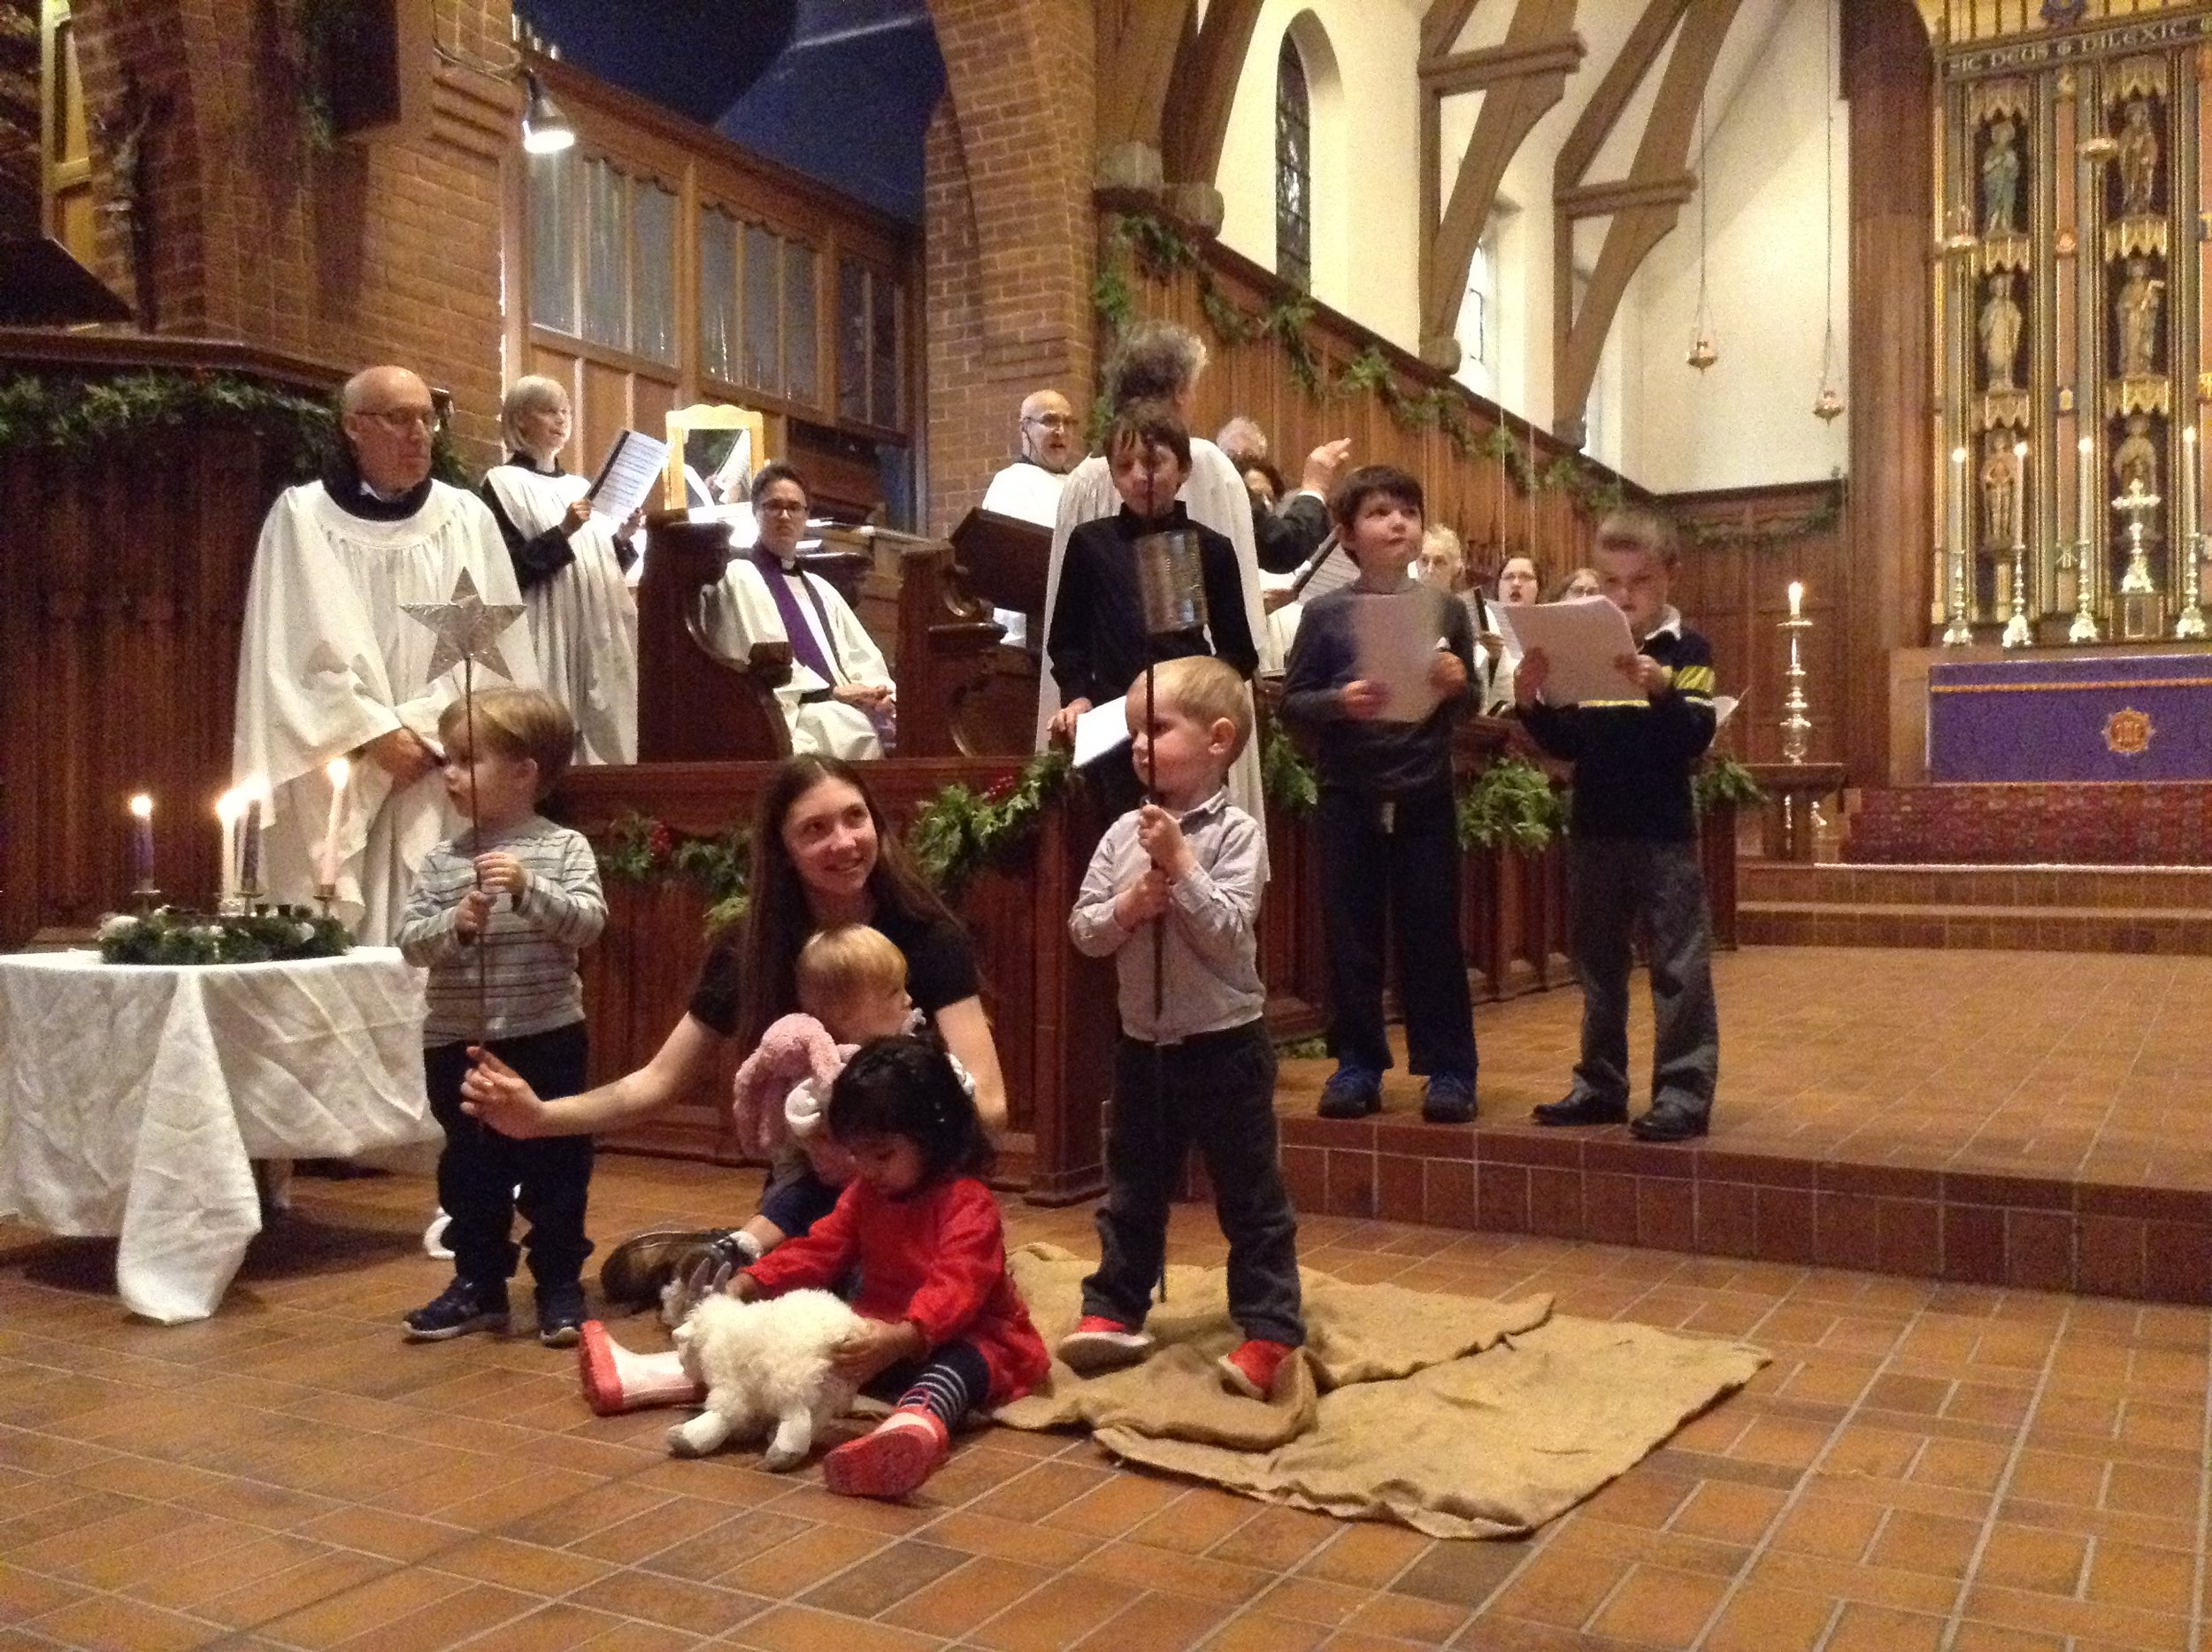 Children of the Church School and Nursery School present their Christmas pageant on Advent IV 2018, accompanied by the choir.